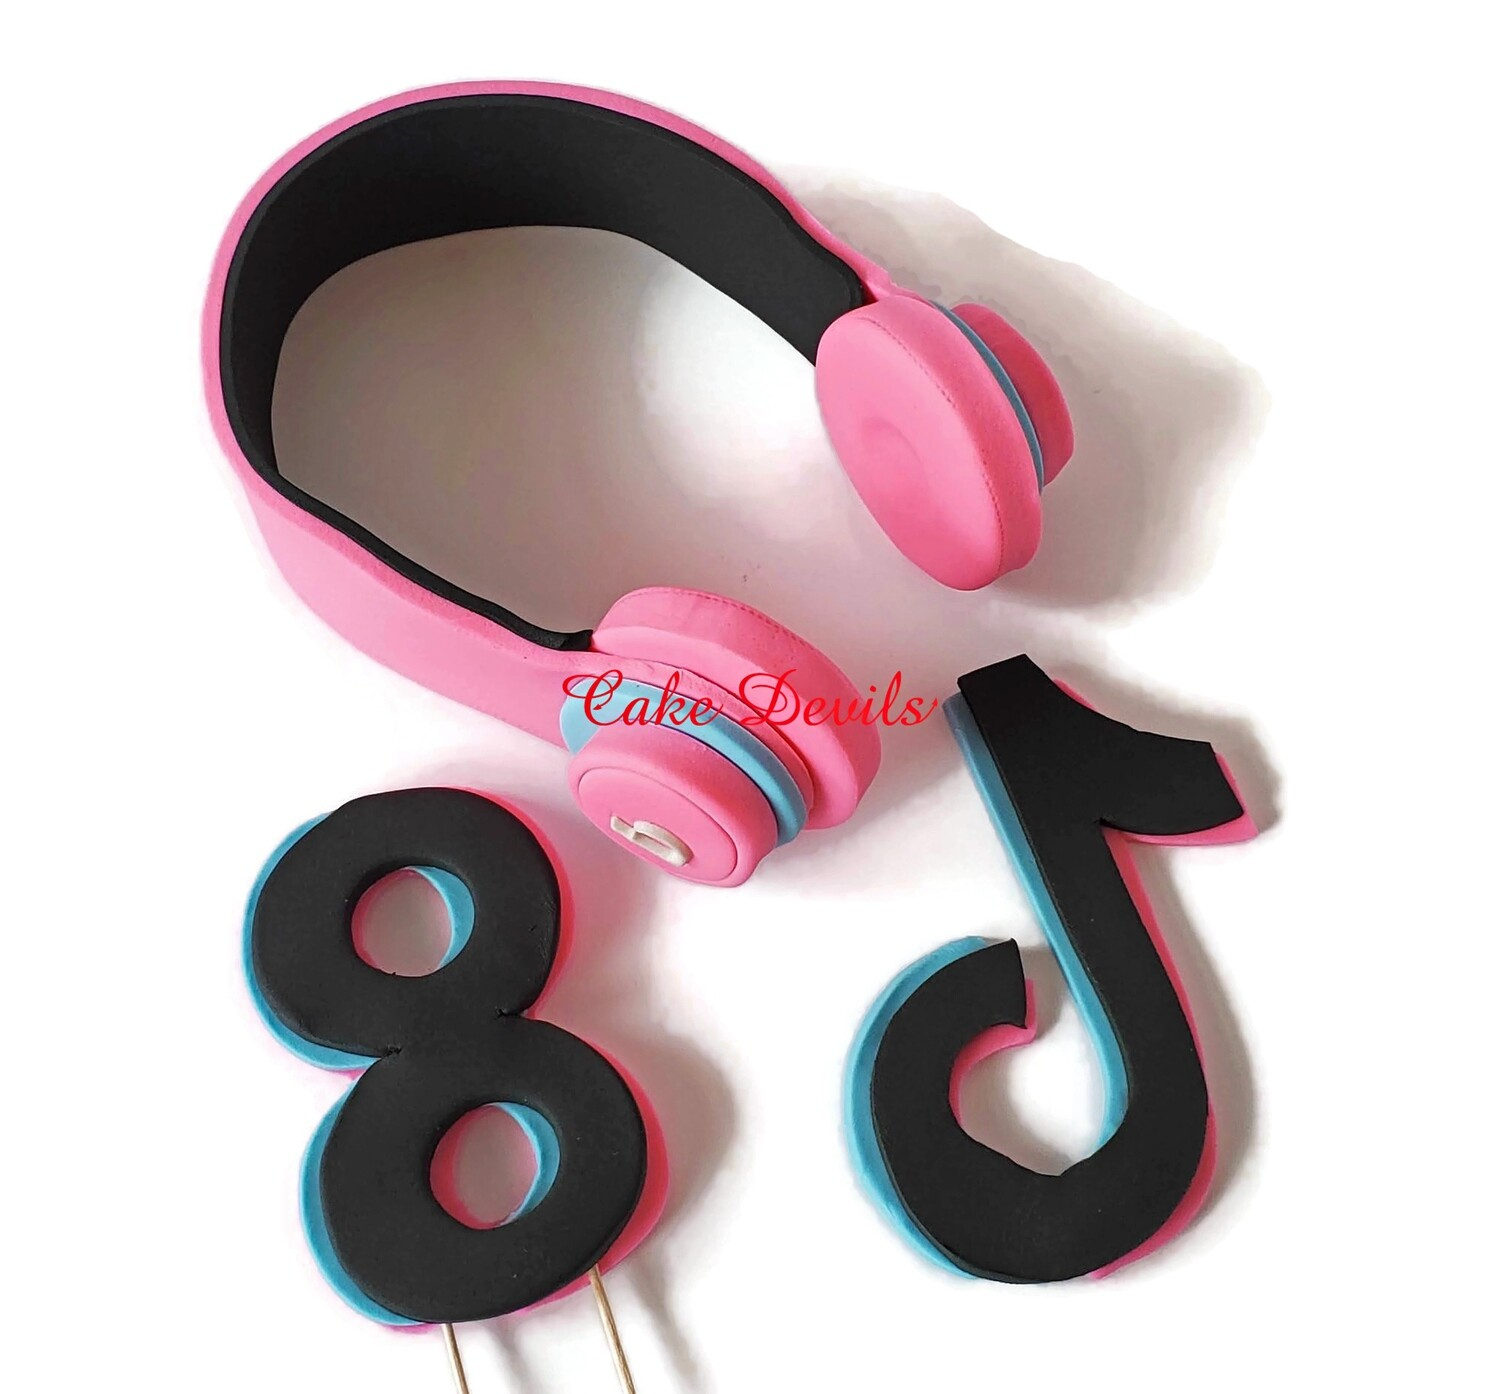 Fondant Tik Tok and Headphones Cake Toppers